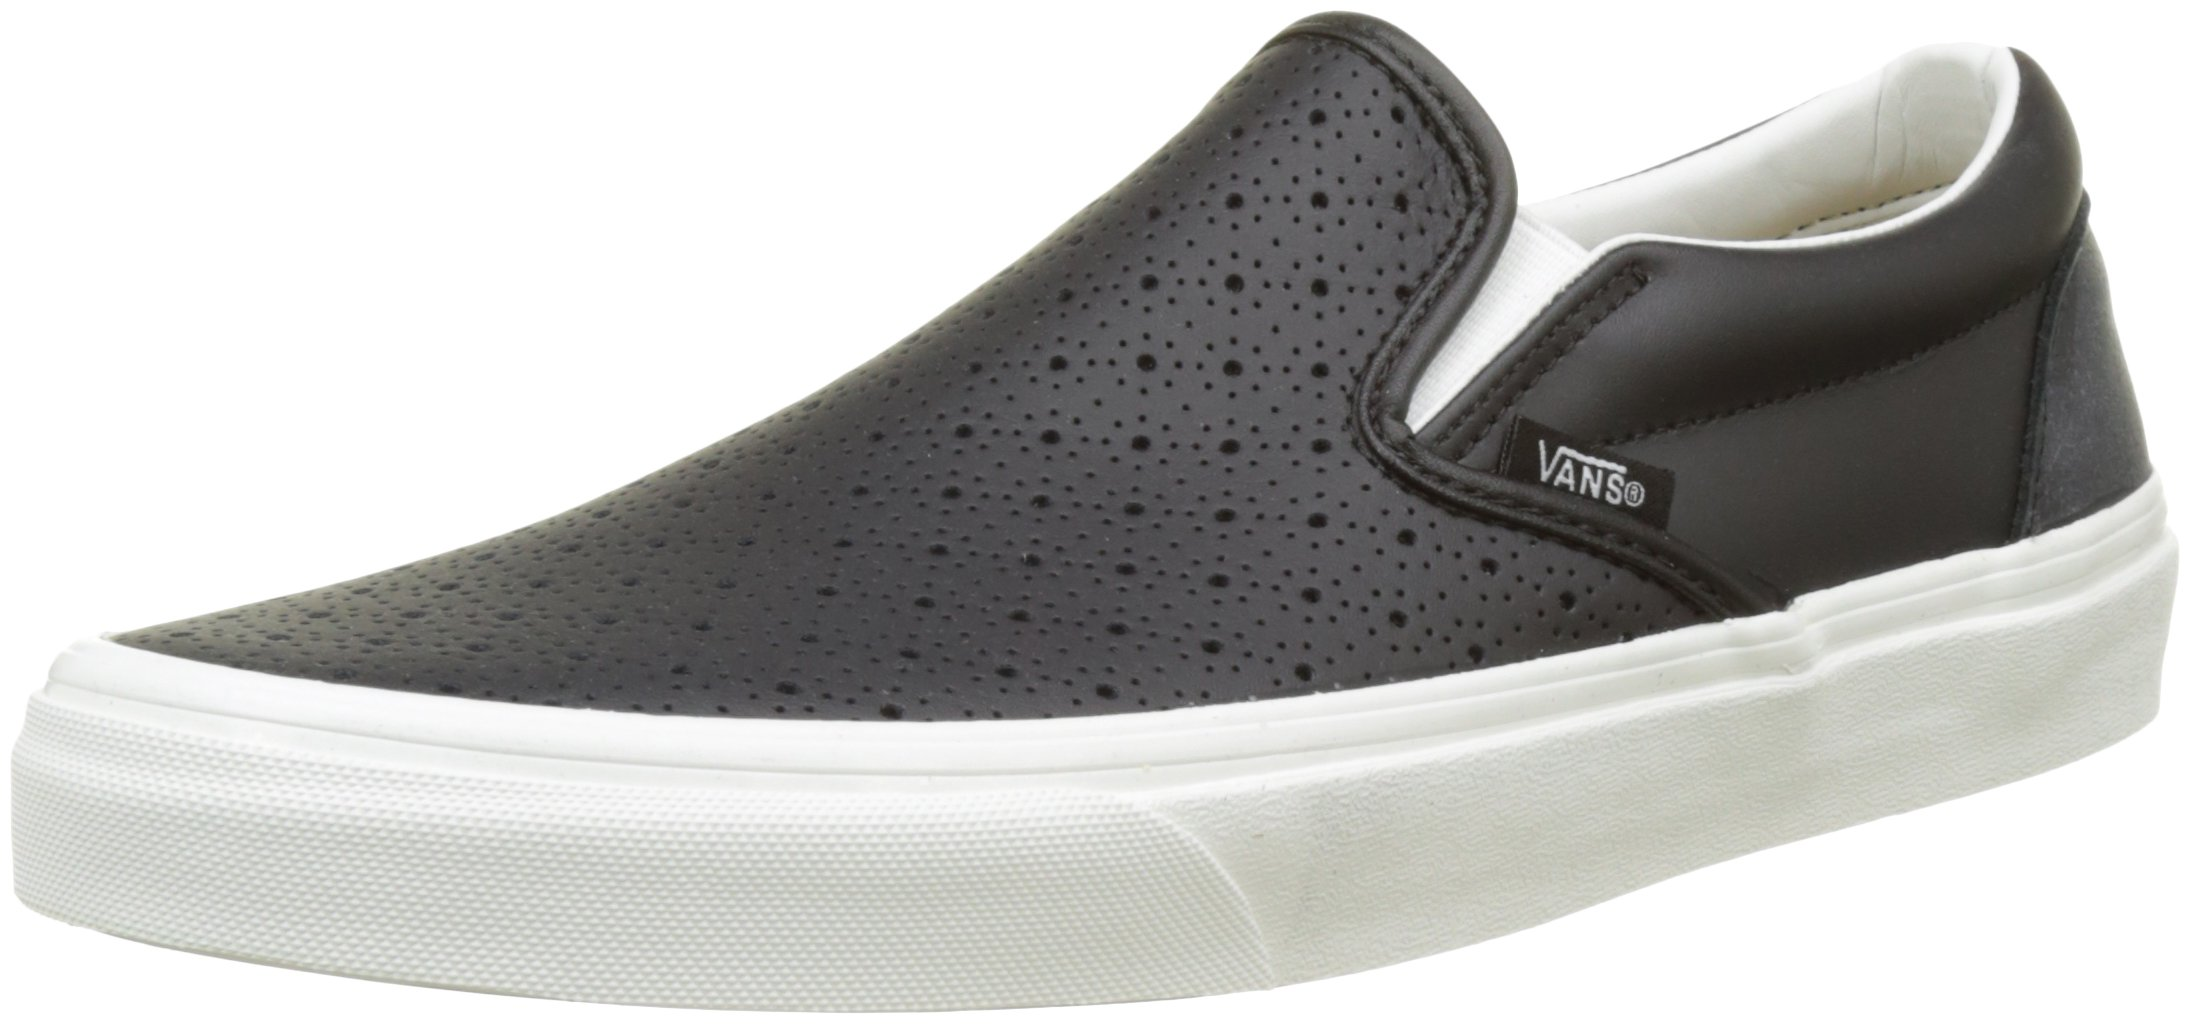 Vans Unisex Classic Slip-On (Leather Perf) Black Men's 6, Women's 7.5 Medium